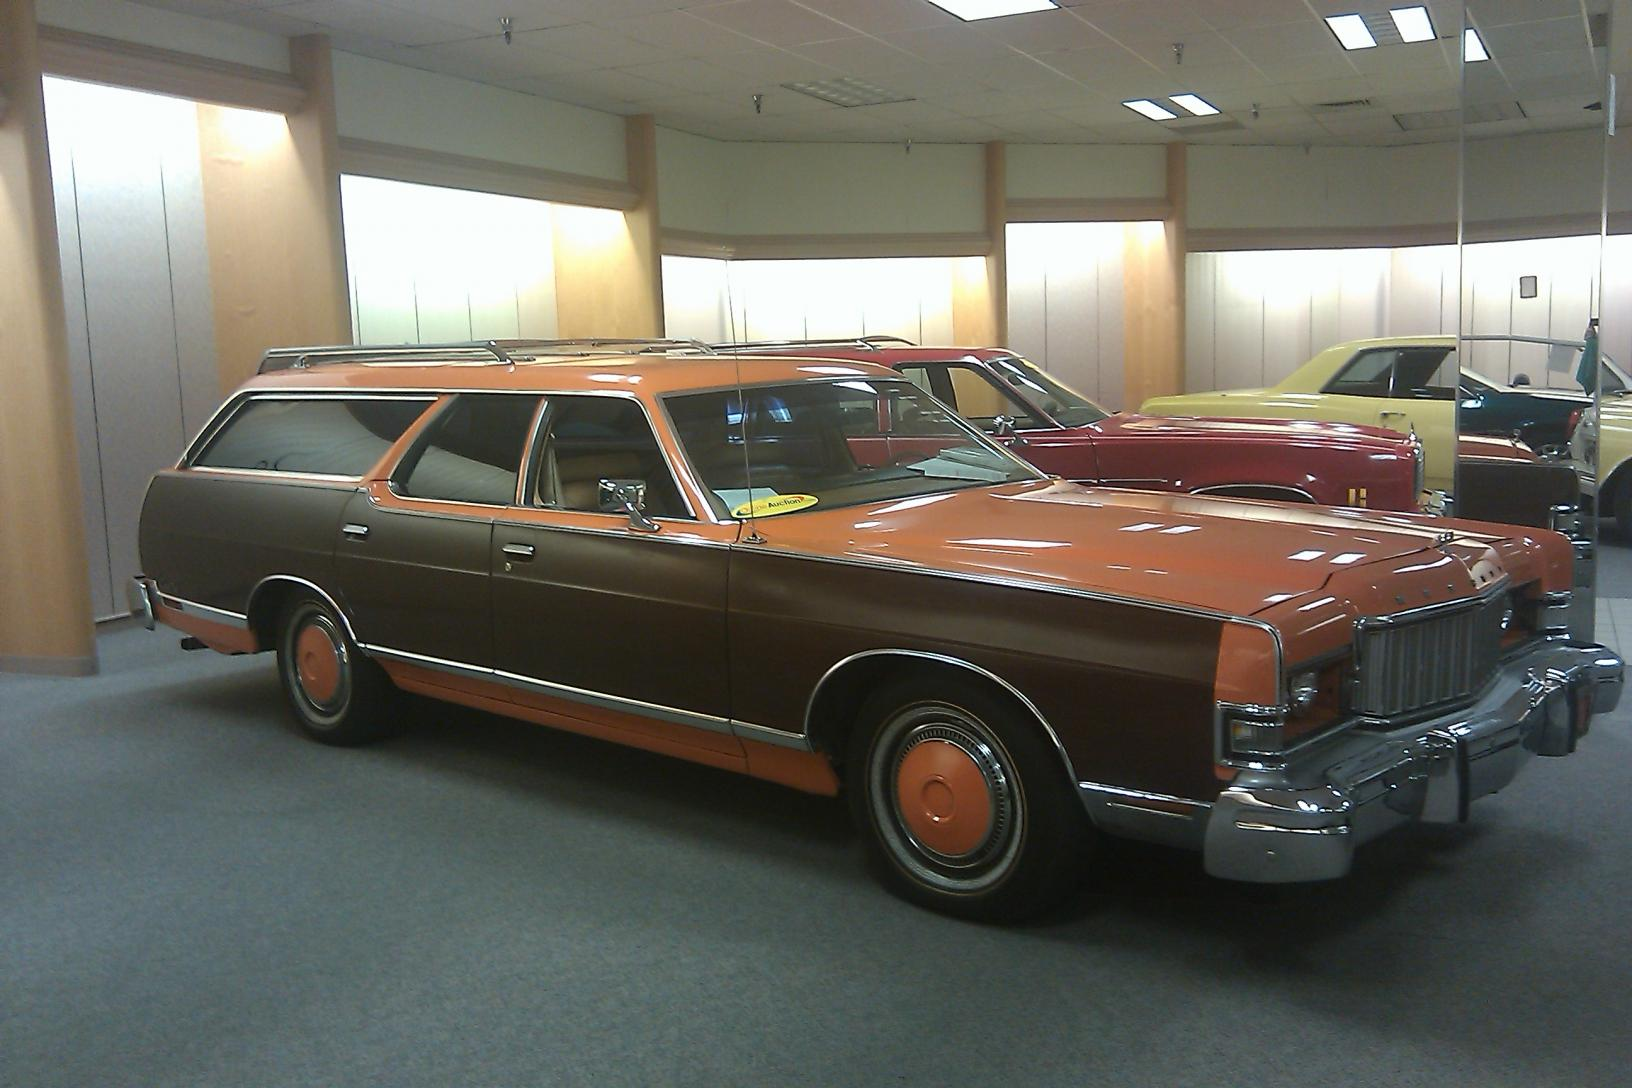 1974 Mercury Grand Marquis Colony Park Wagon